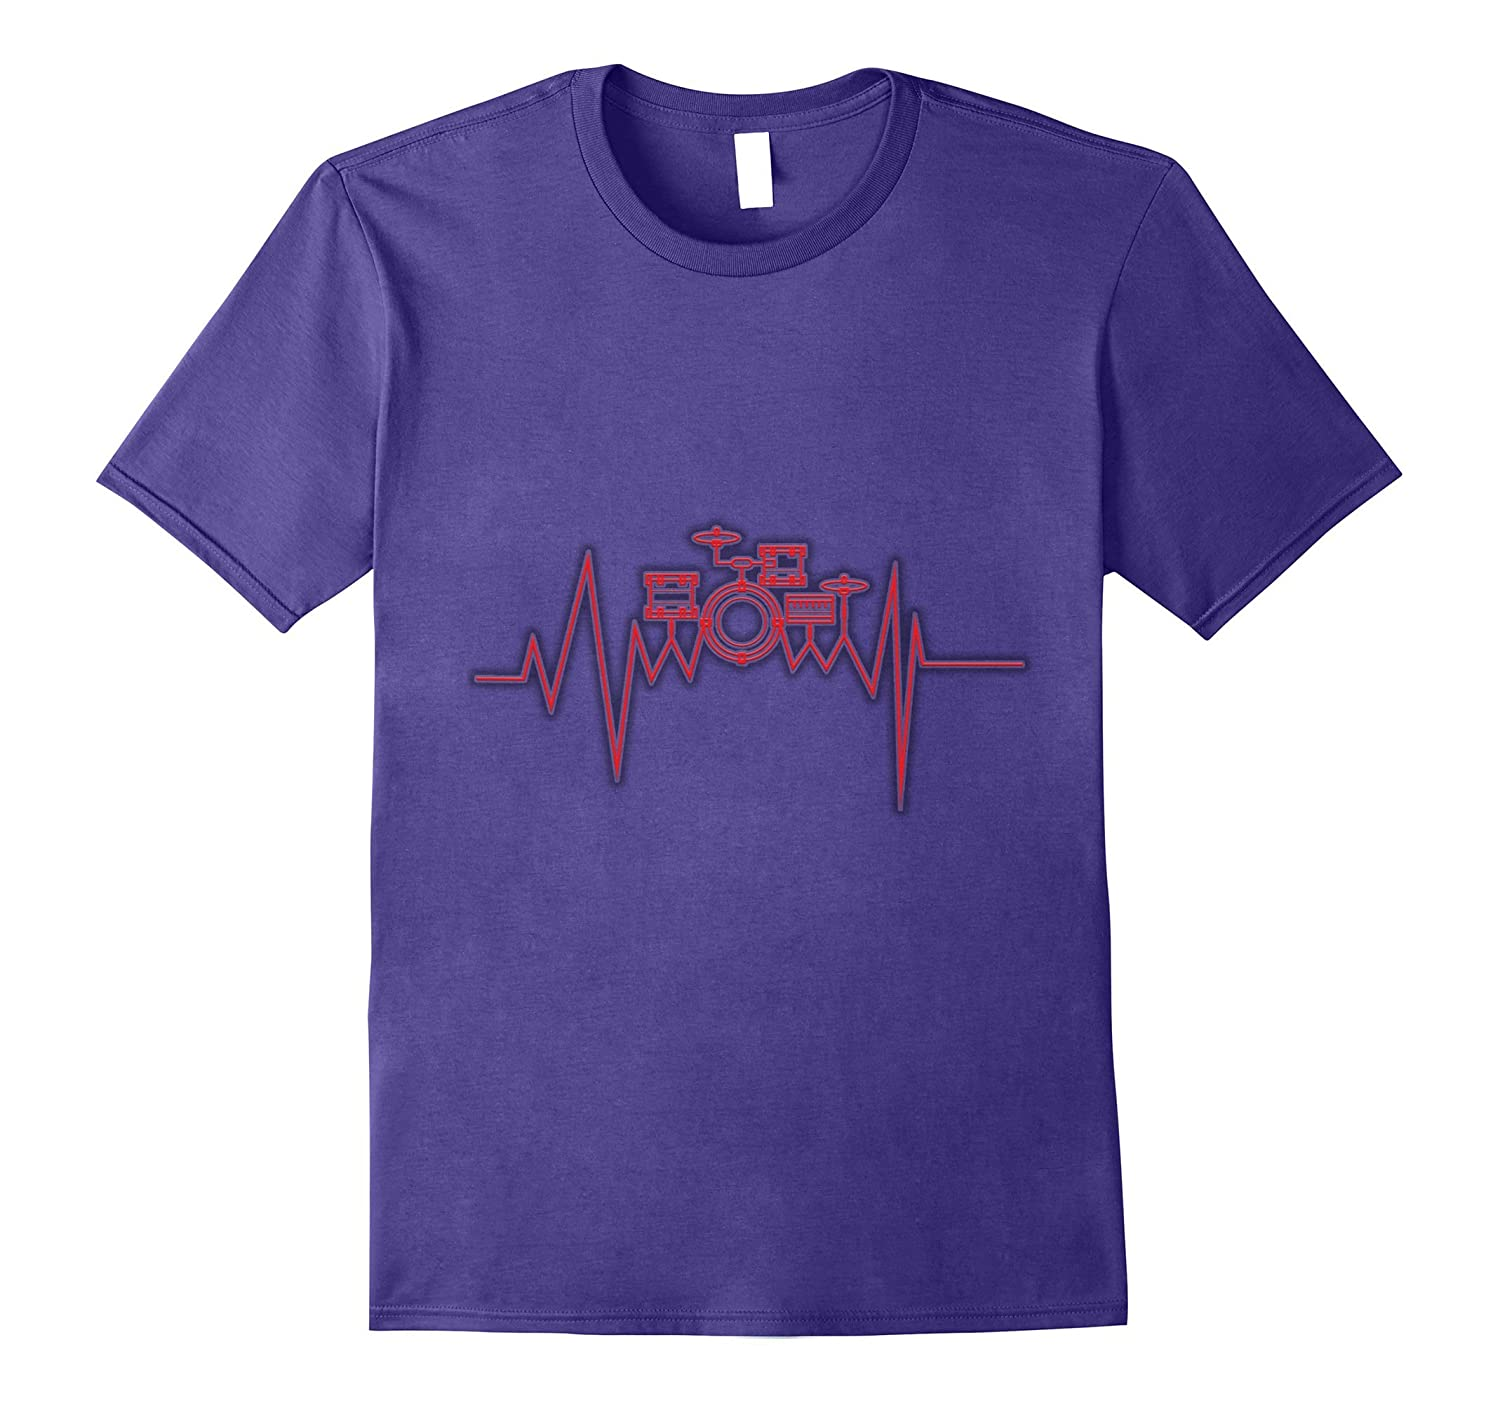 Heartbeat Drums Drumsticks Funny T-Shirt Cool Drummer Gift-Vaci